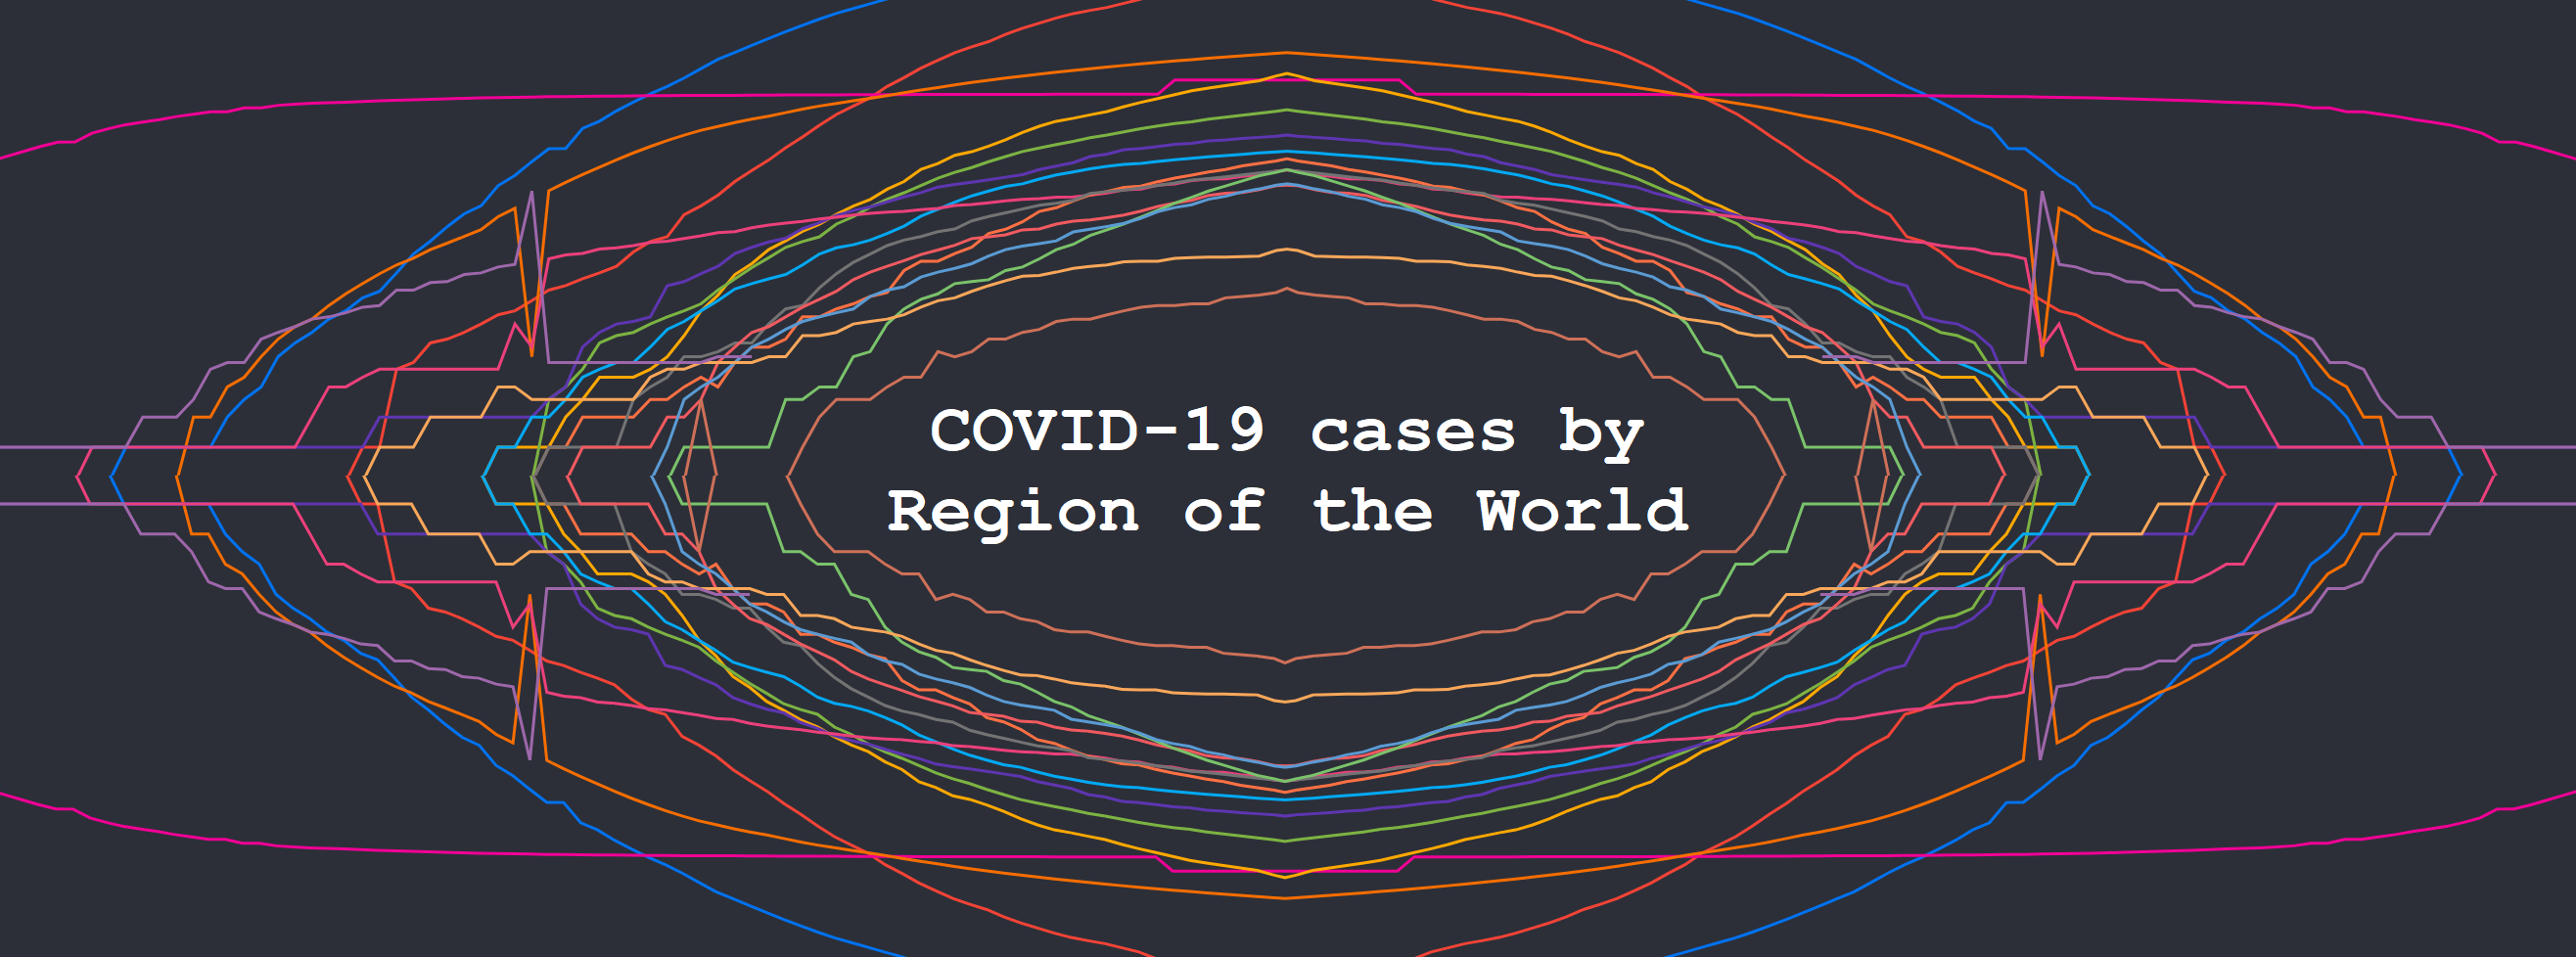 COVID-19 cases by Region of the World